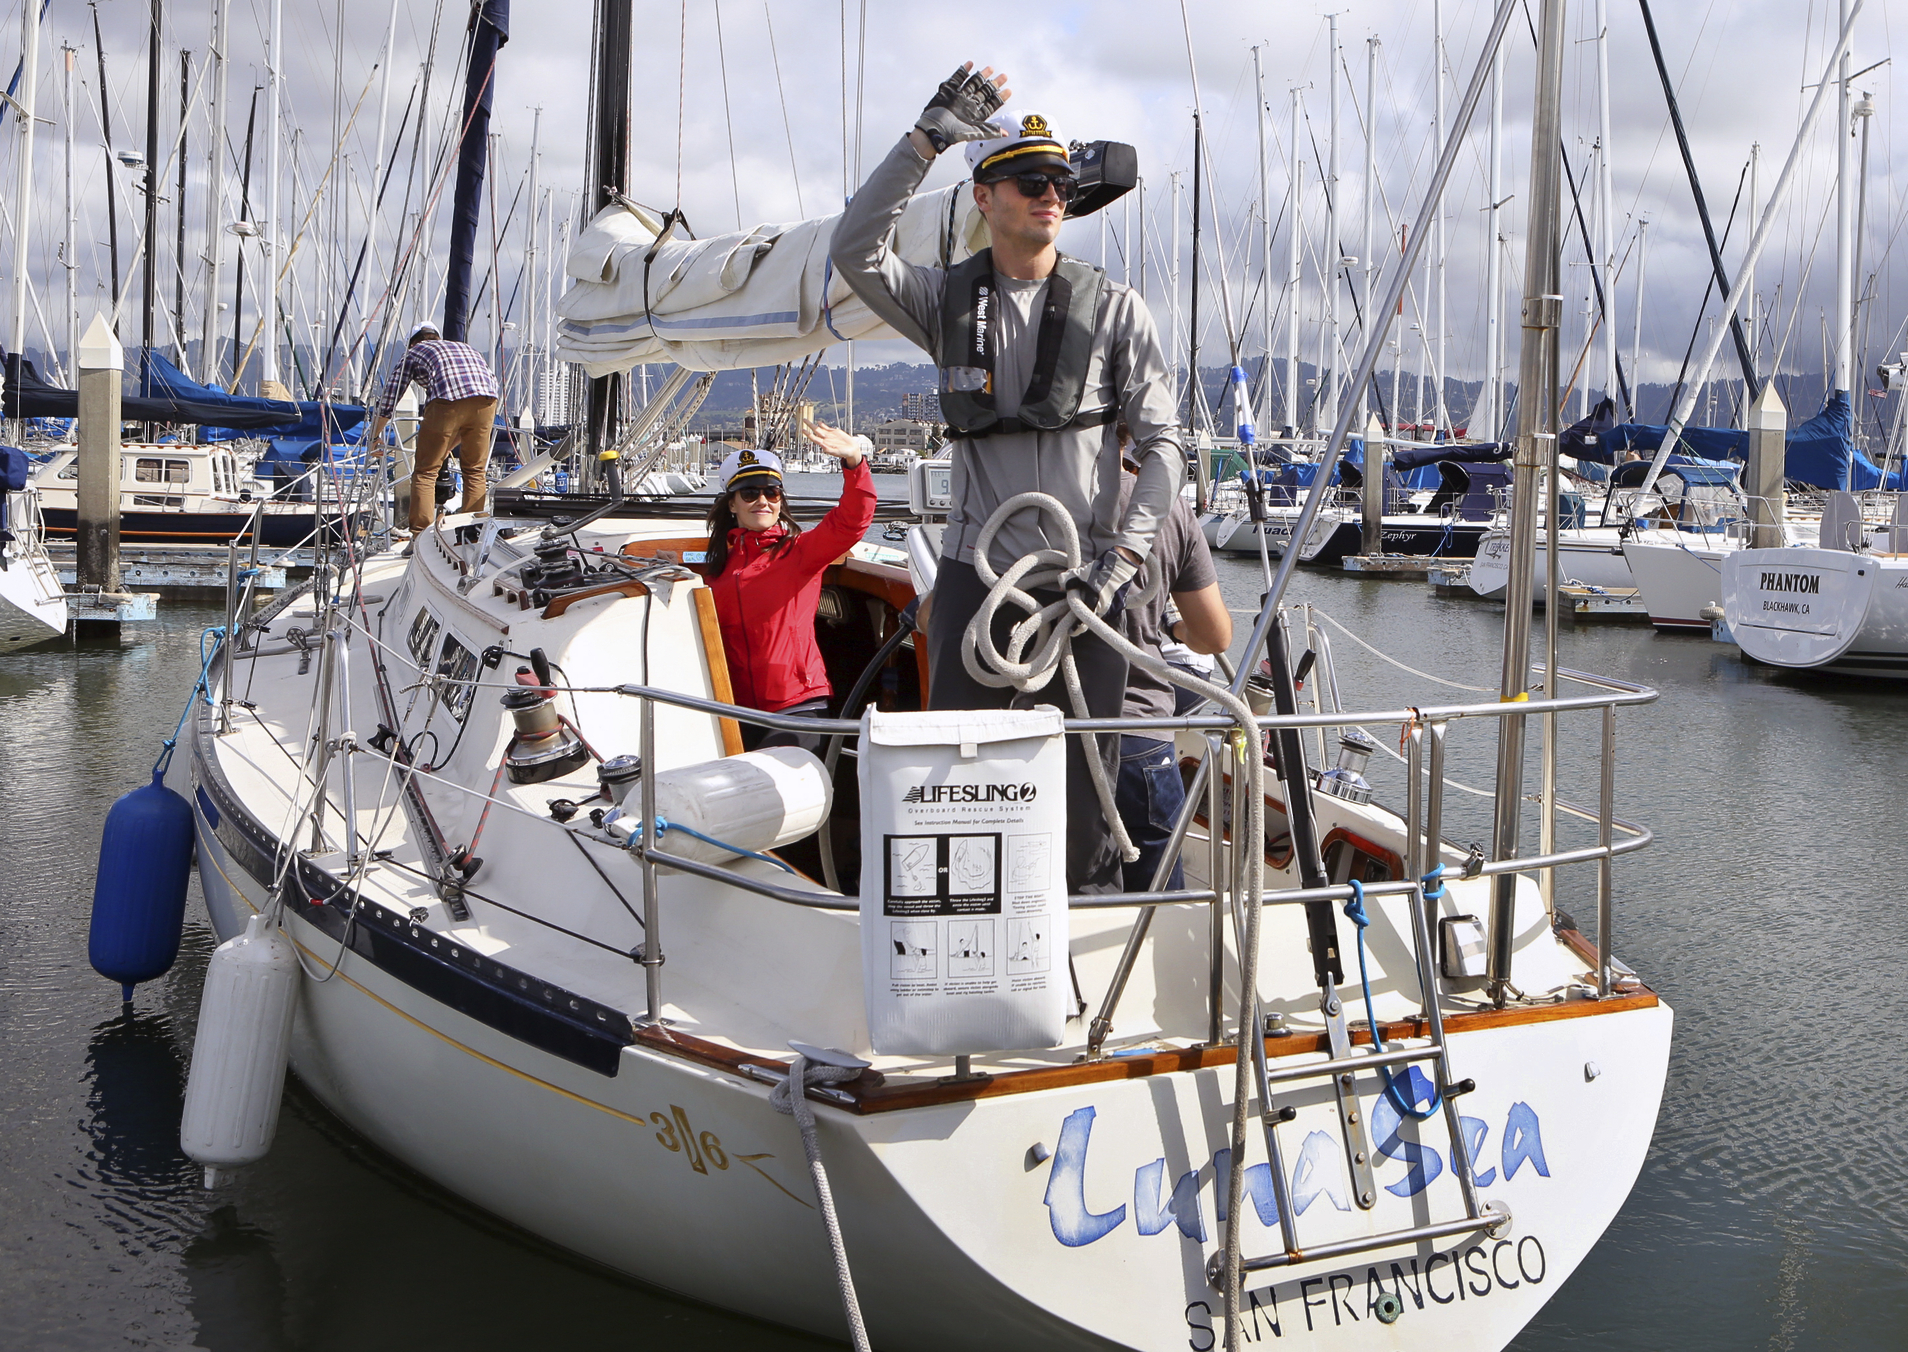 Startups want to be the Airbnb for boats - SFGate